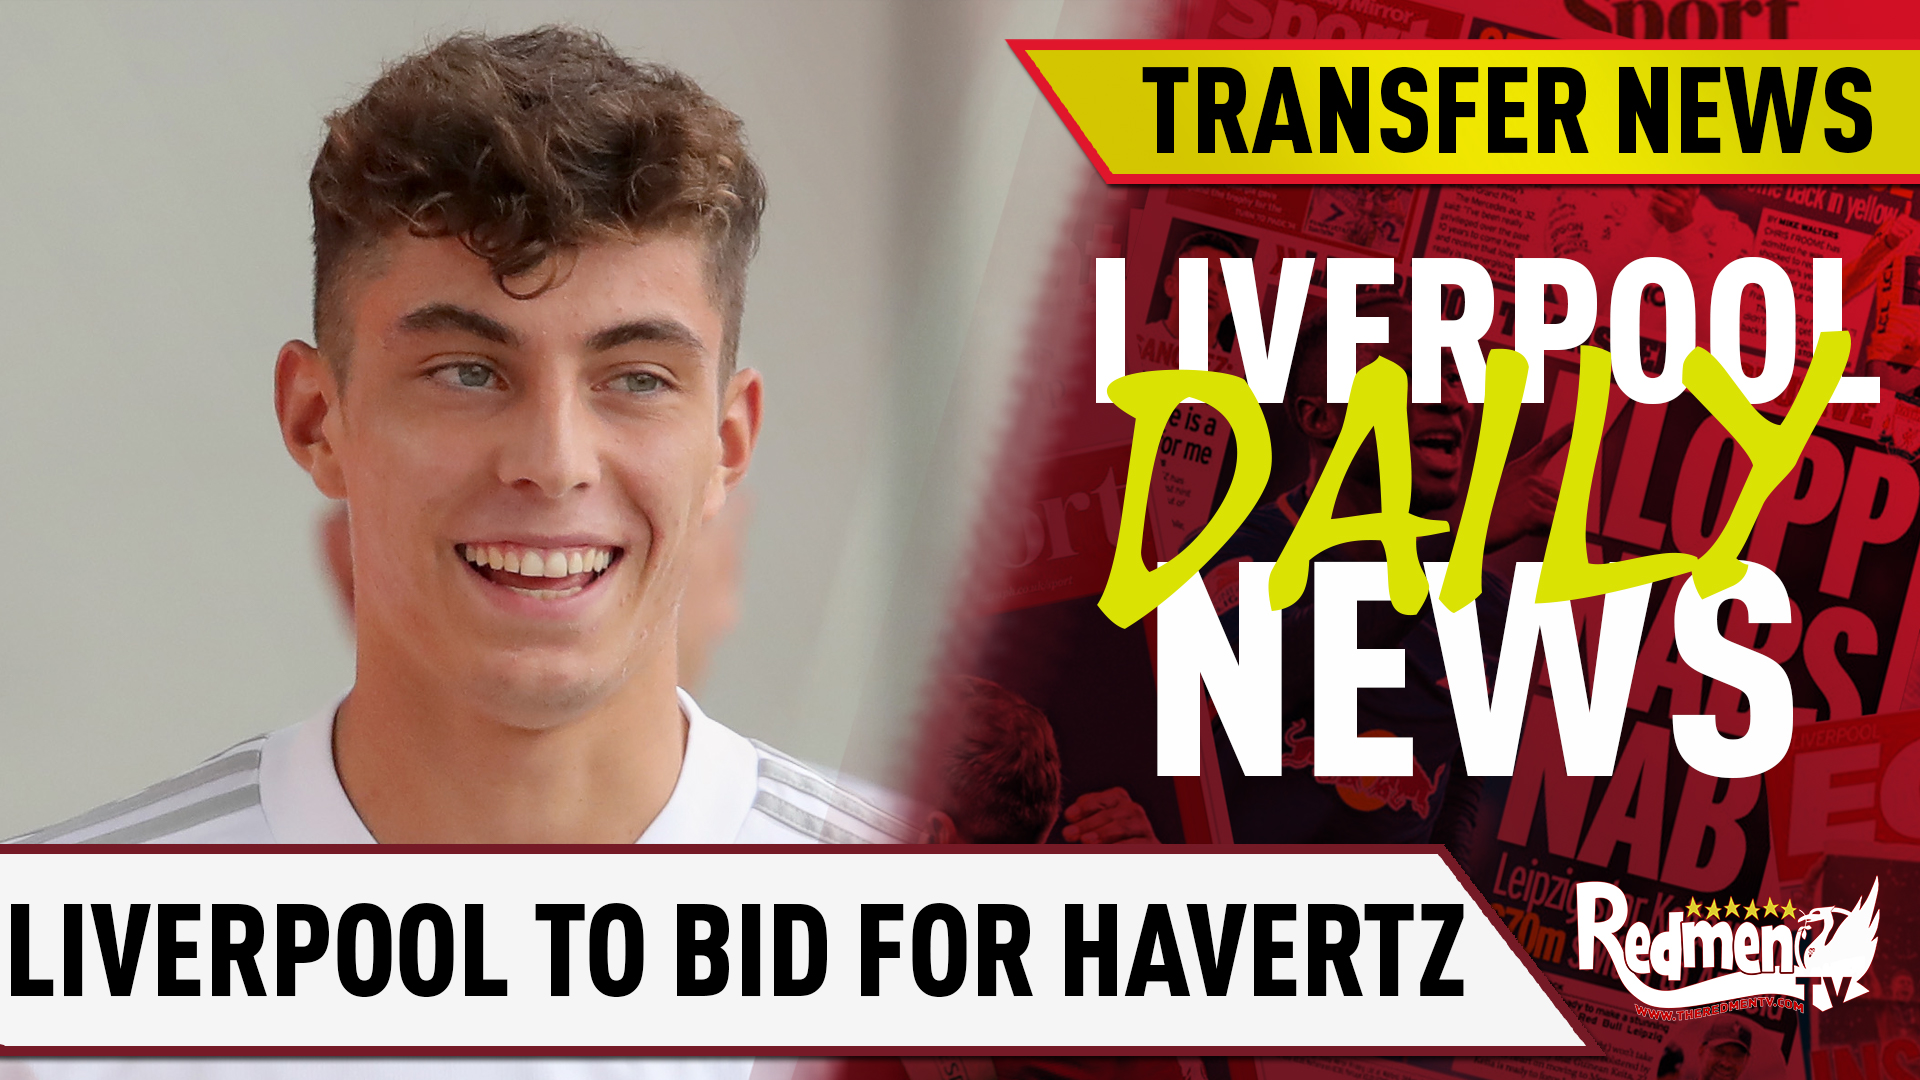 Liverpool To Bid For Havertz Liverpool Daily News Live